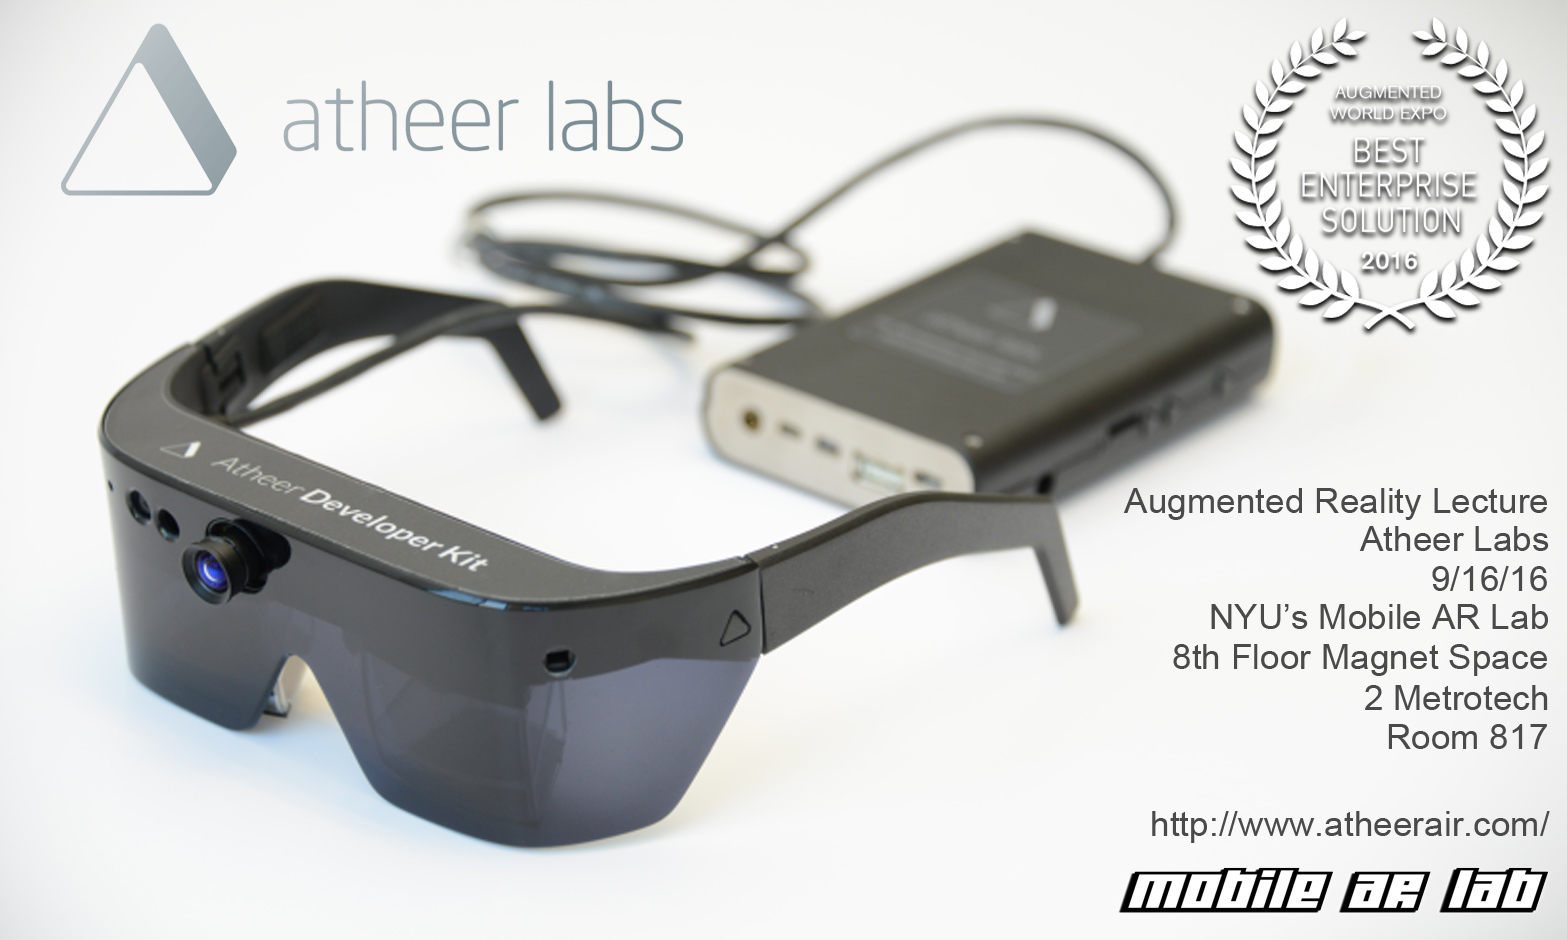 atheer-developer-kit_nyu_mobile_ar_lab_1_1